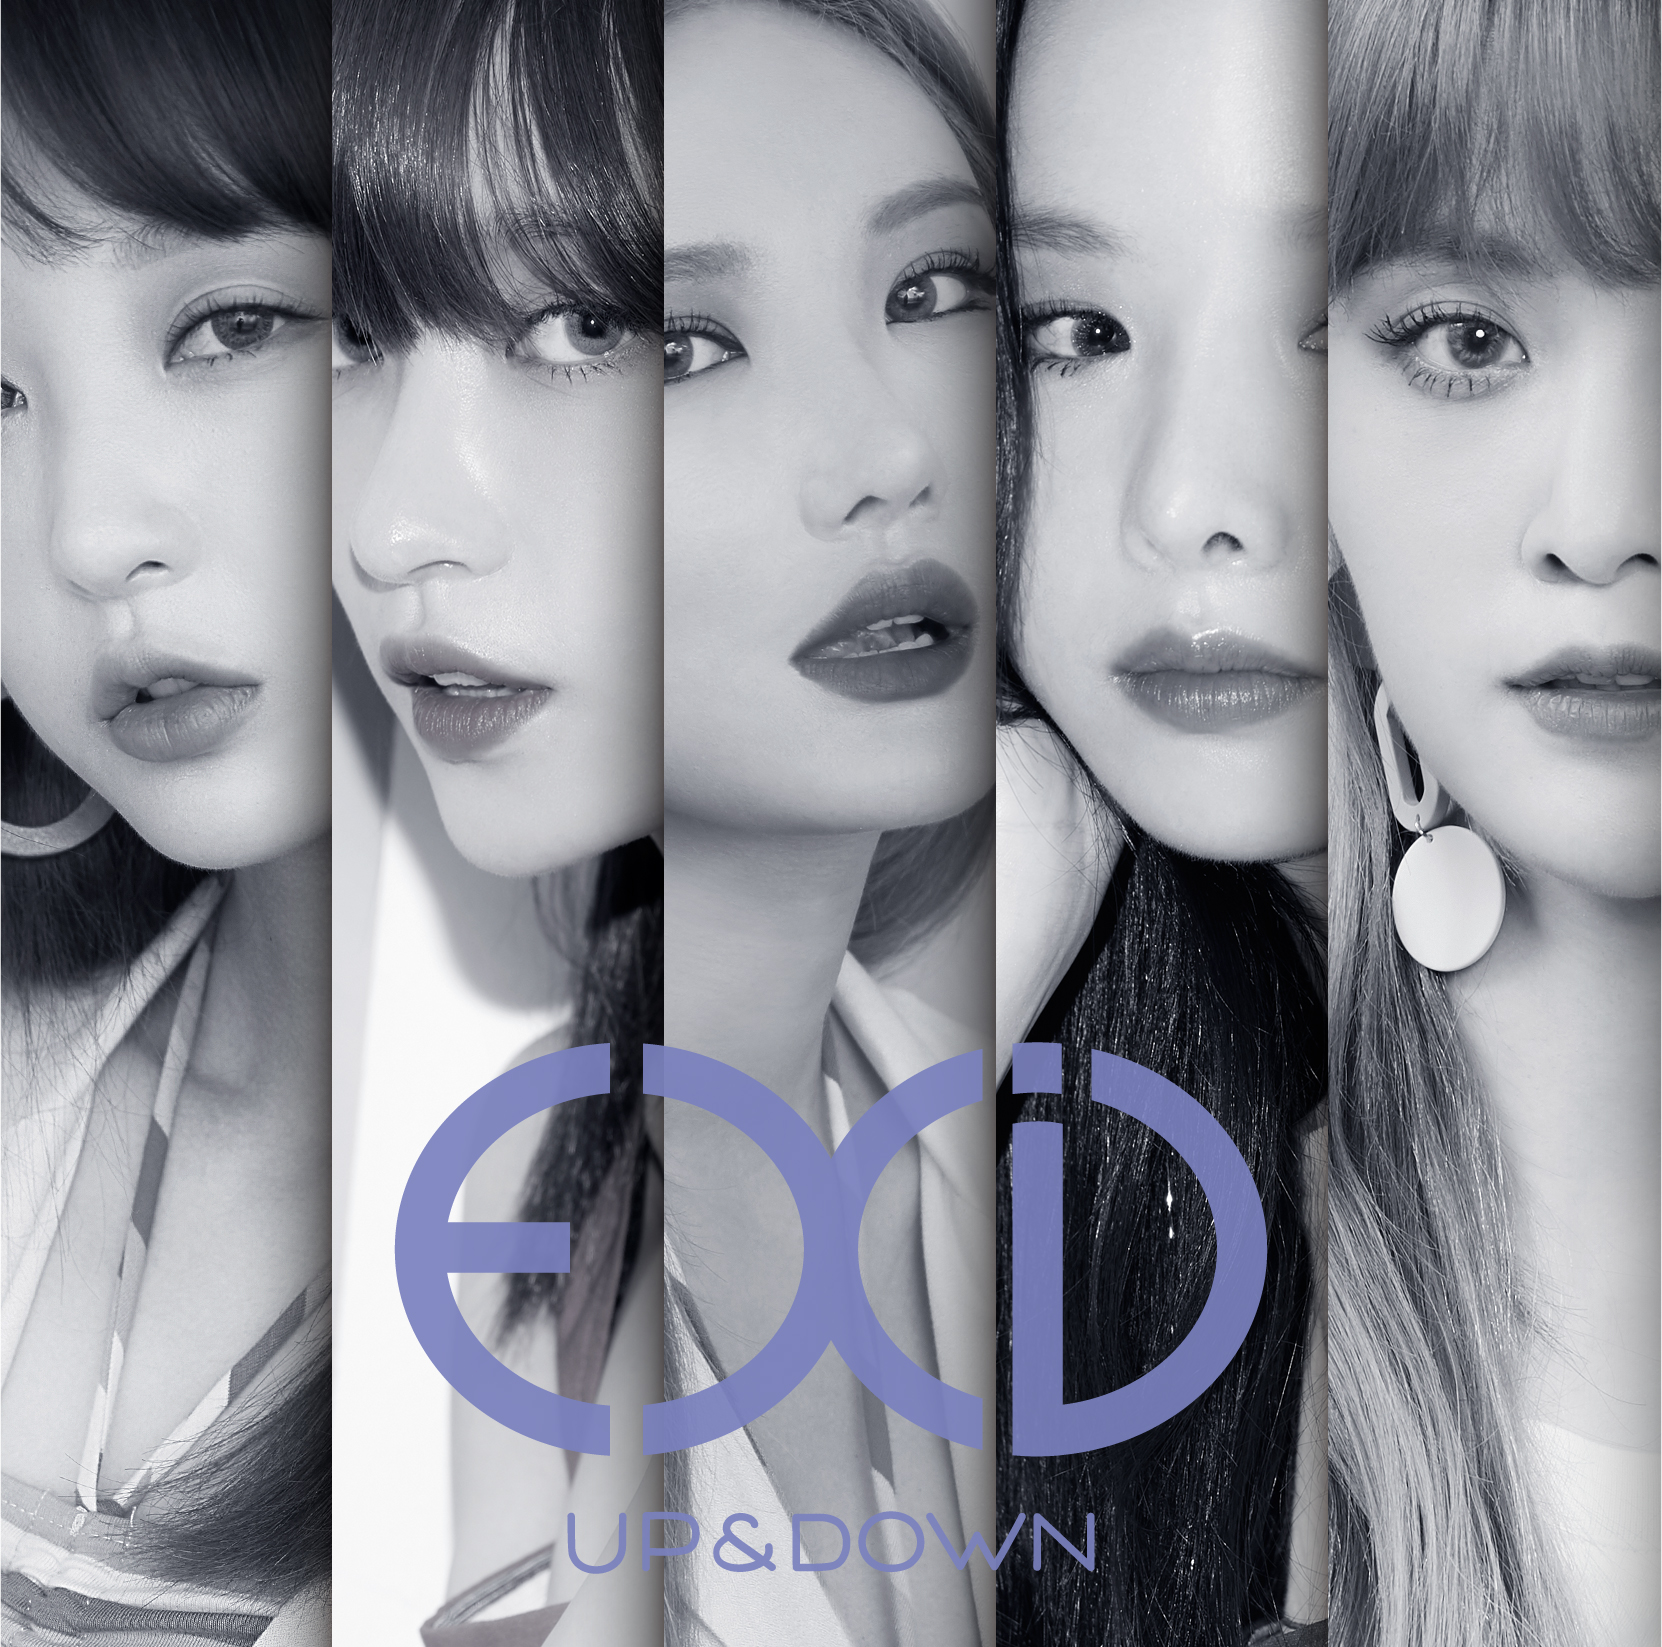 exid japan official fan club